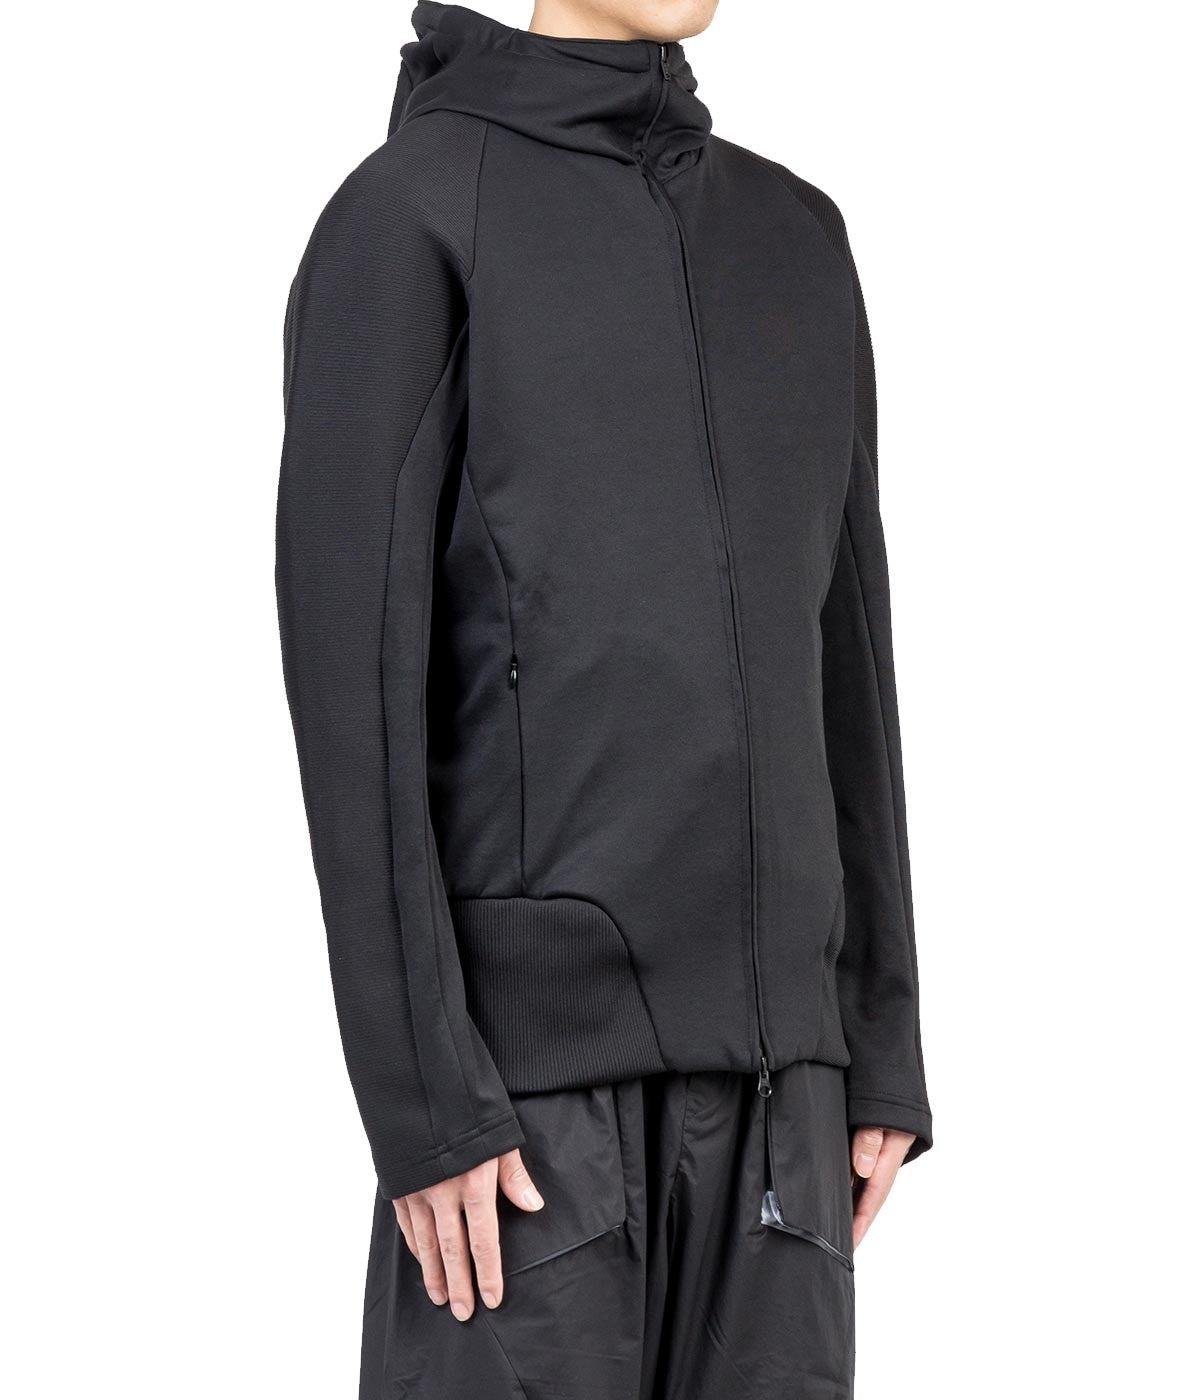 Black Wired Zip-Up Hoodie